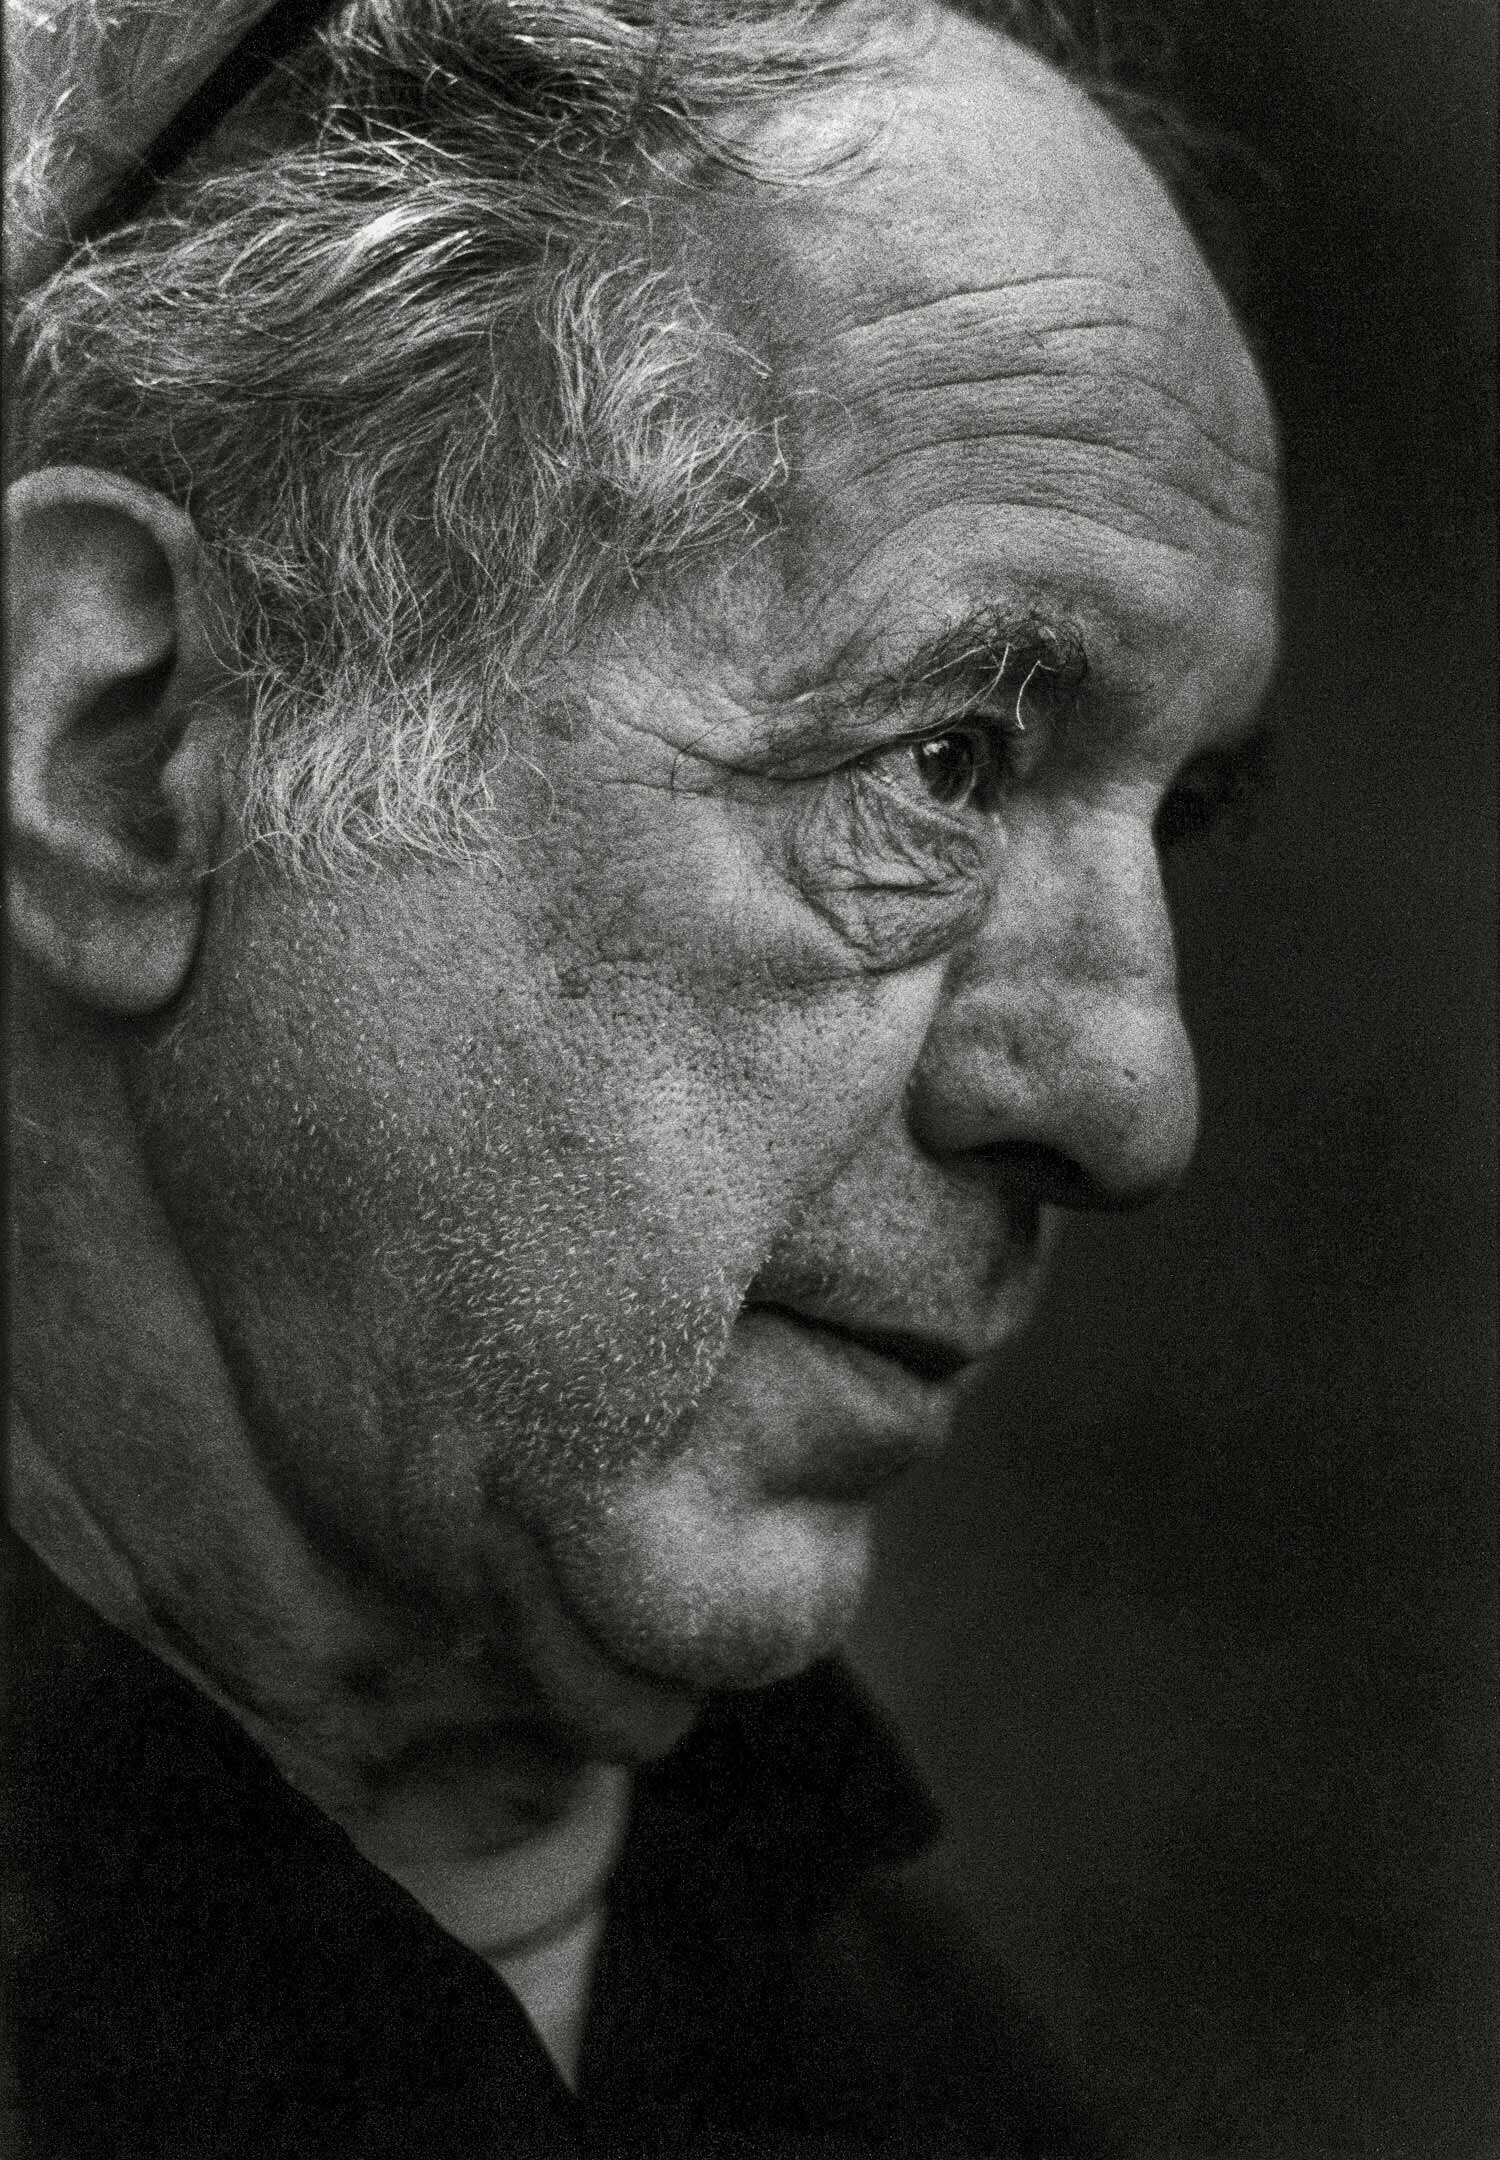 Robert Frank,1924-2019 - Robert Frank died on September 9, 2019 at the age of 94 years. Robert Frank was one of the most important American artist whose photographs captured the lives of everyday people and influenced a generation with his raw and evocative styleI have photographed him for my book Faces of Photography on February 11, 2000 in Zurich.